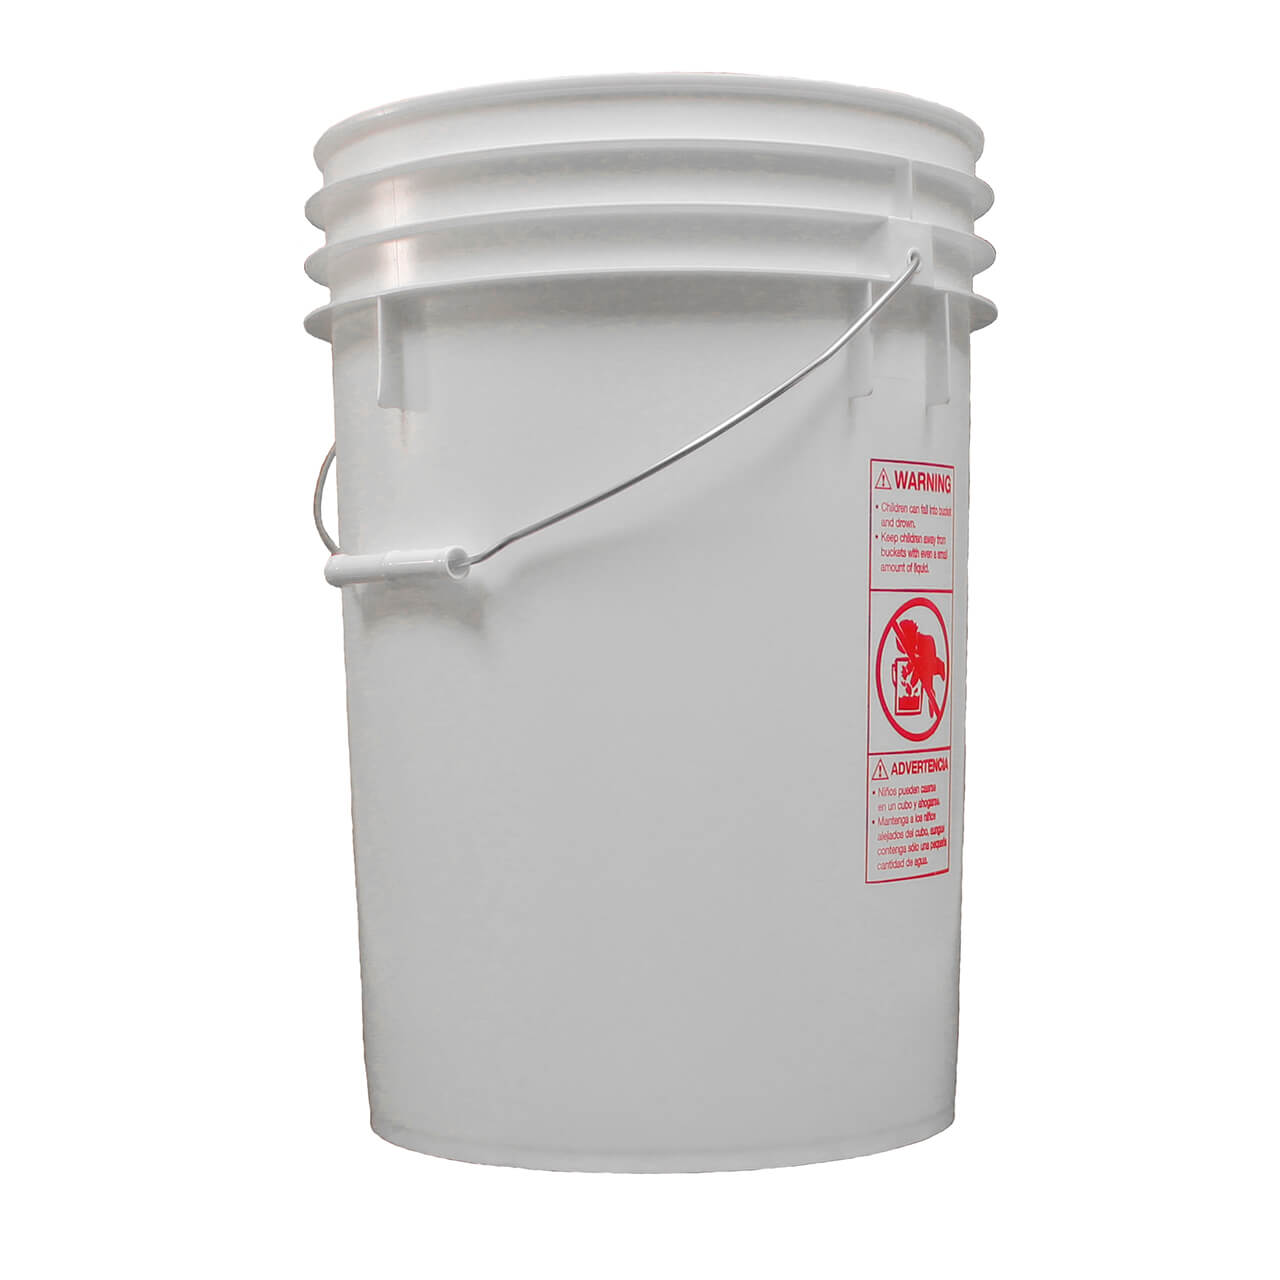 6 Gallon Round White Plastic Pail W Metal Handle P062